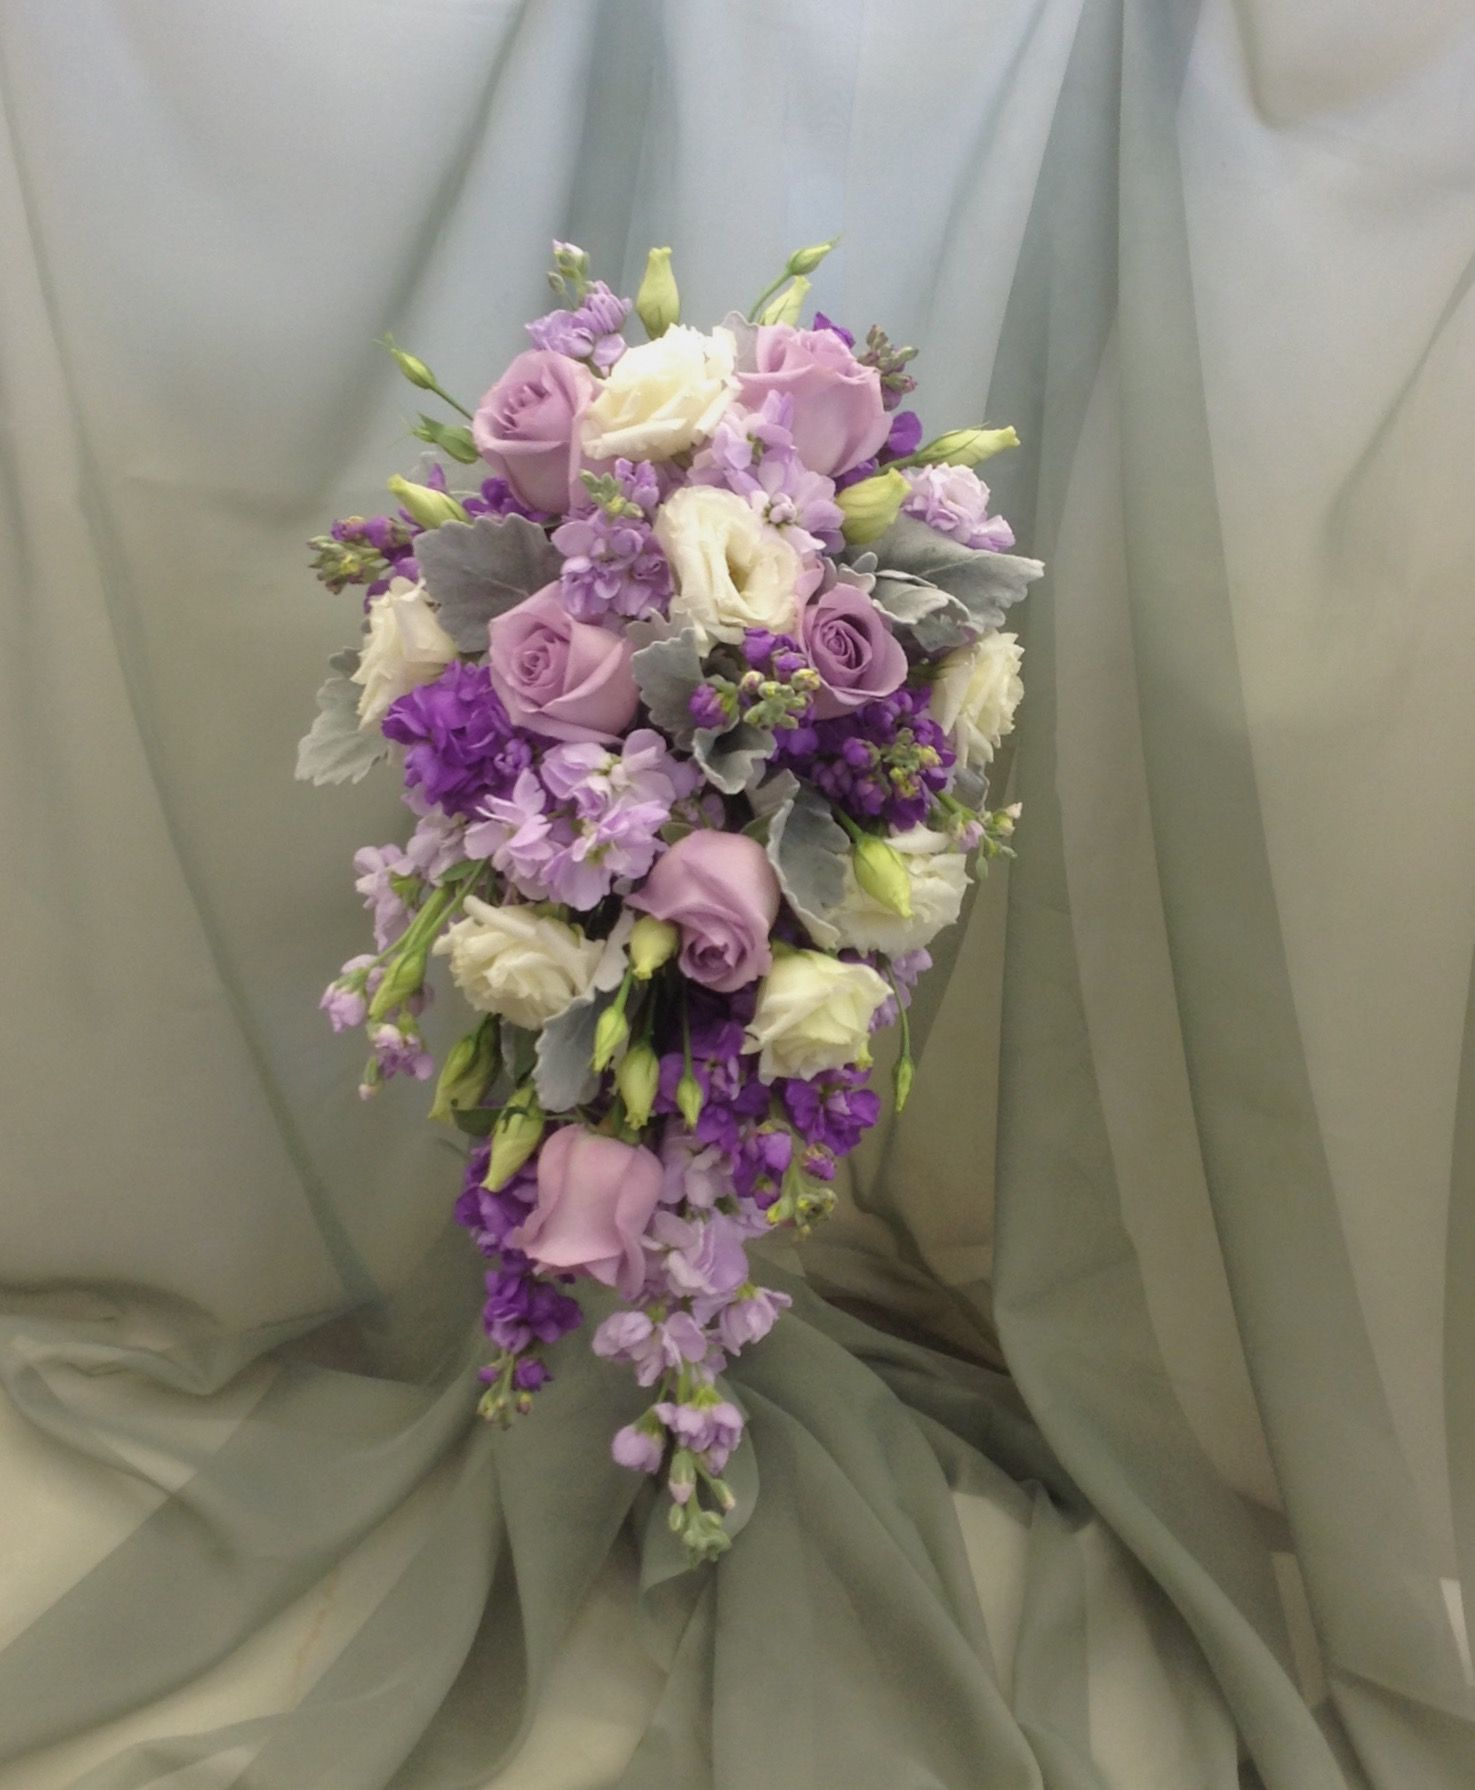 Lavender White And Plum Cascading Bridal Bouquet By Nancy At Belton Hyvee Wedding Flower Pricing Colorful Bridal Bouquet Silk Flower Bridal Bouquet